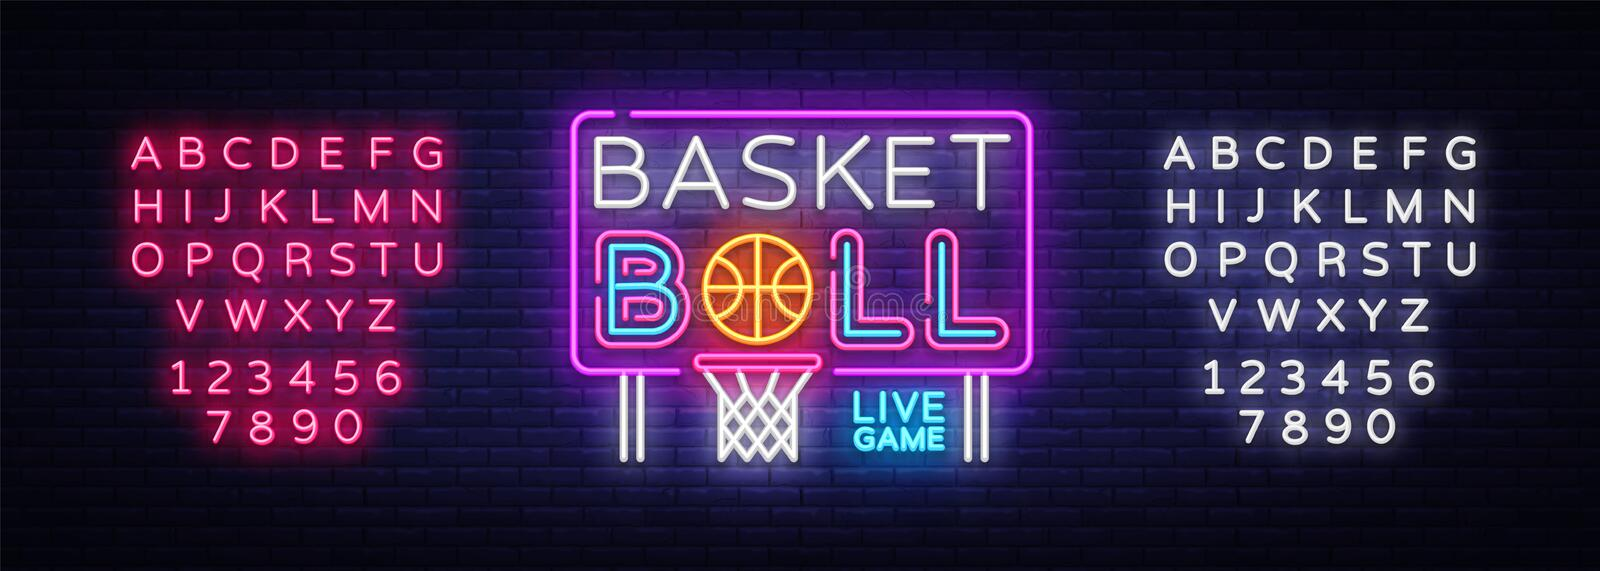 Basketball neon sign vector. Basketball Design template neon sign, light banner, neon signboard, nightly bright stock illustration